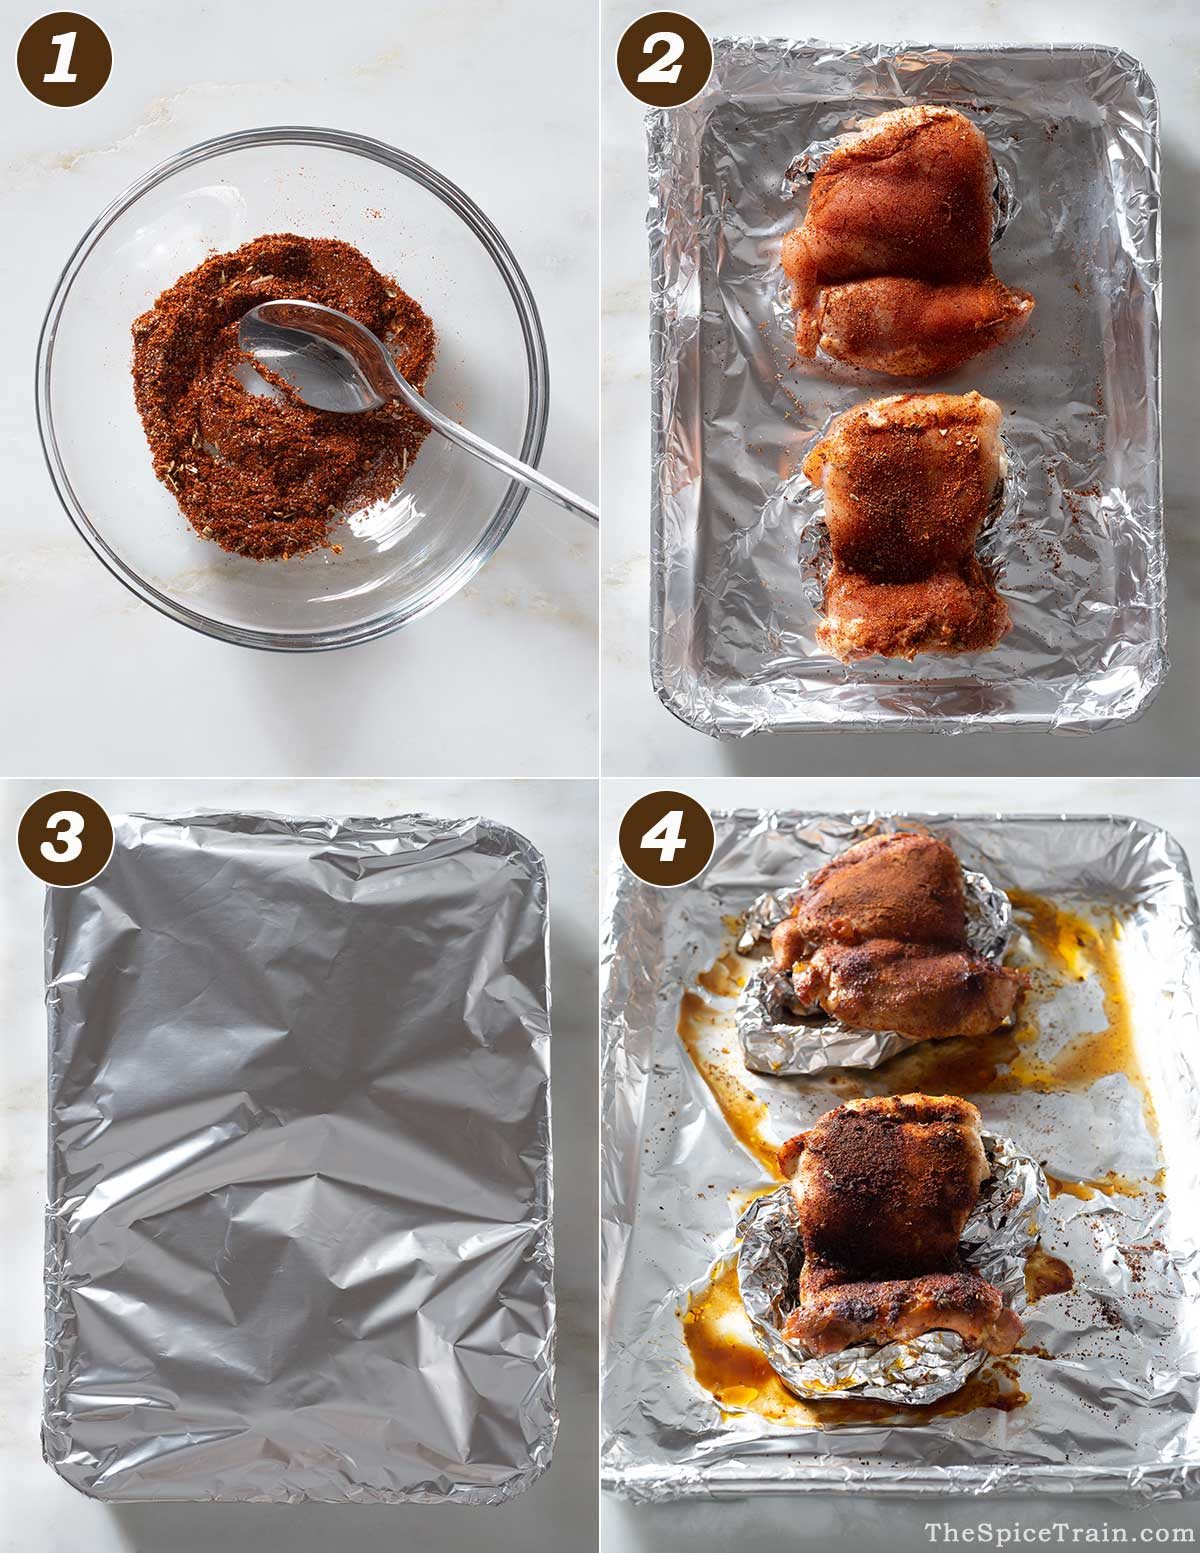 Spice-rubbed chicken thighs preparation in four steps.